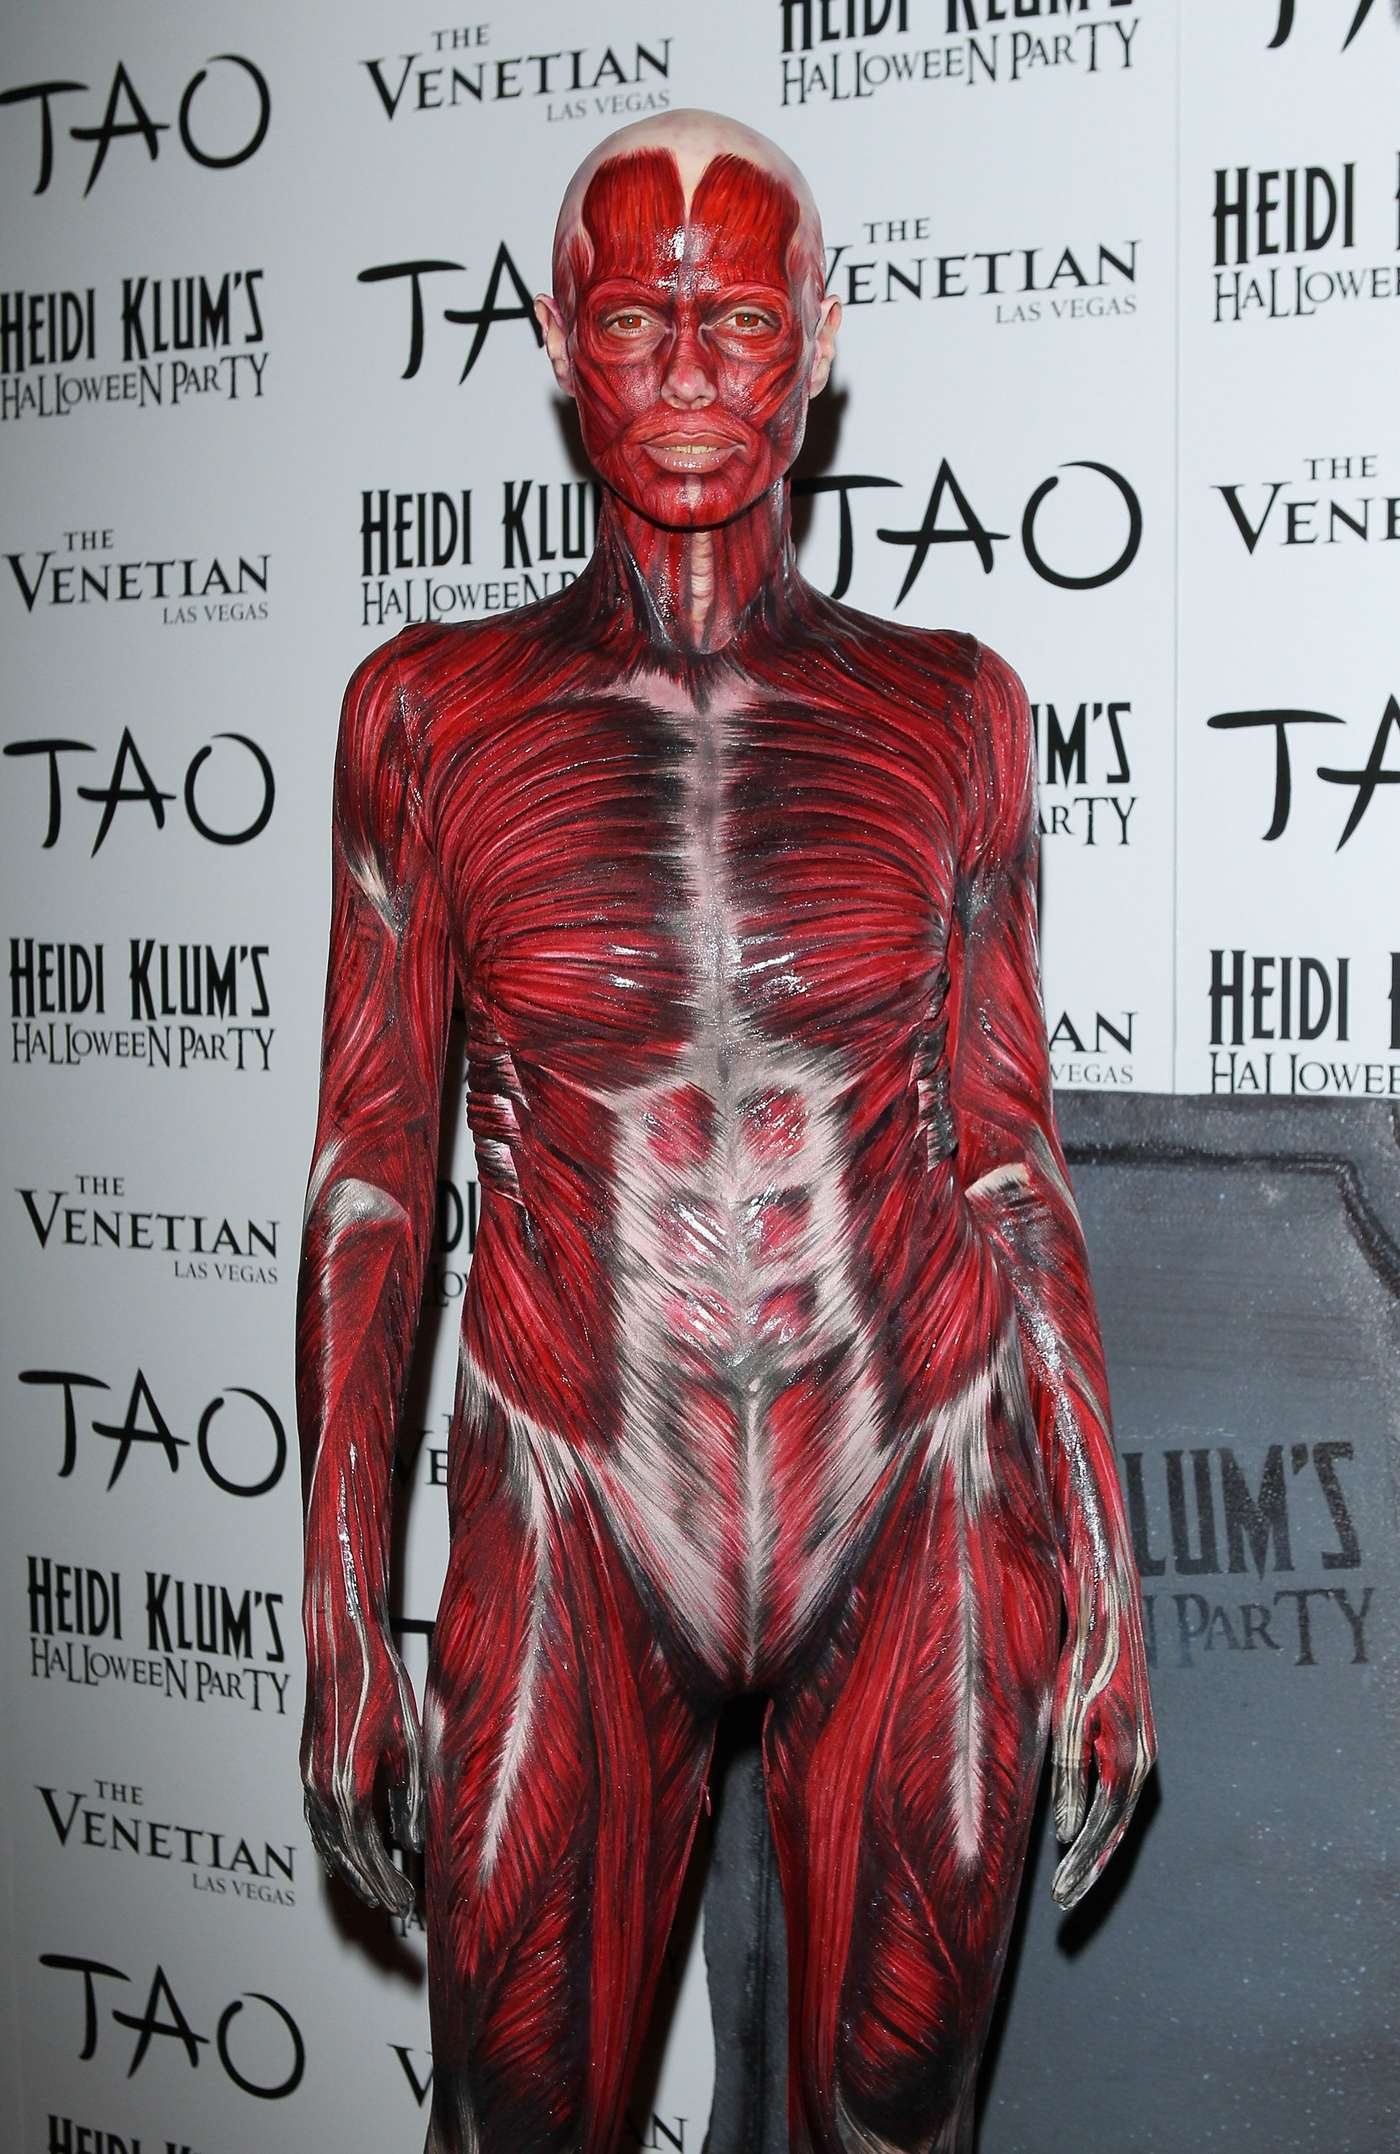 heidi klum muscles and veins costume halloween party in las vegas 01 full size - Las Vegas Halloween Costume